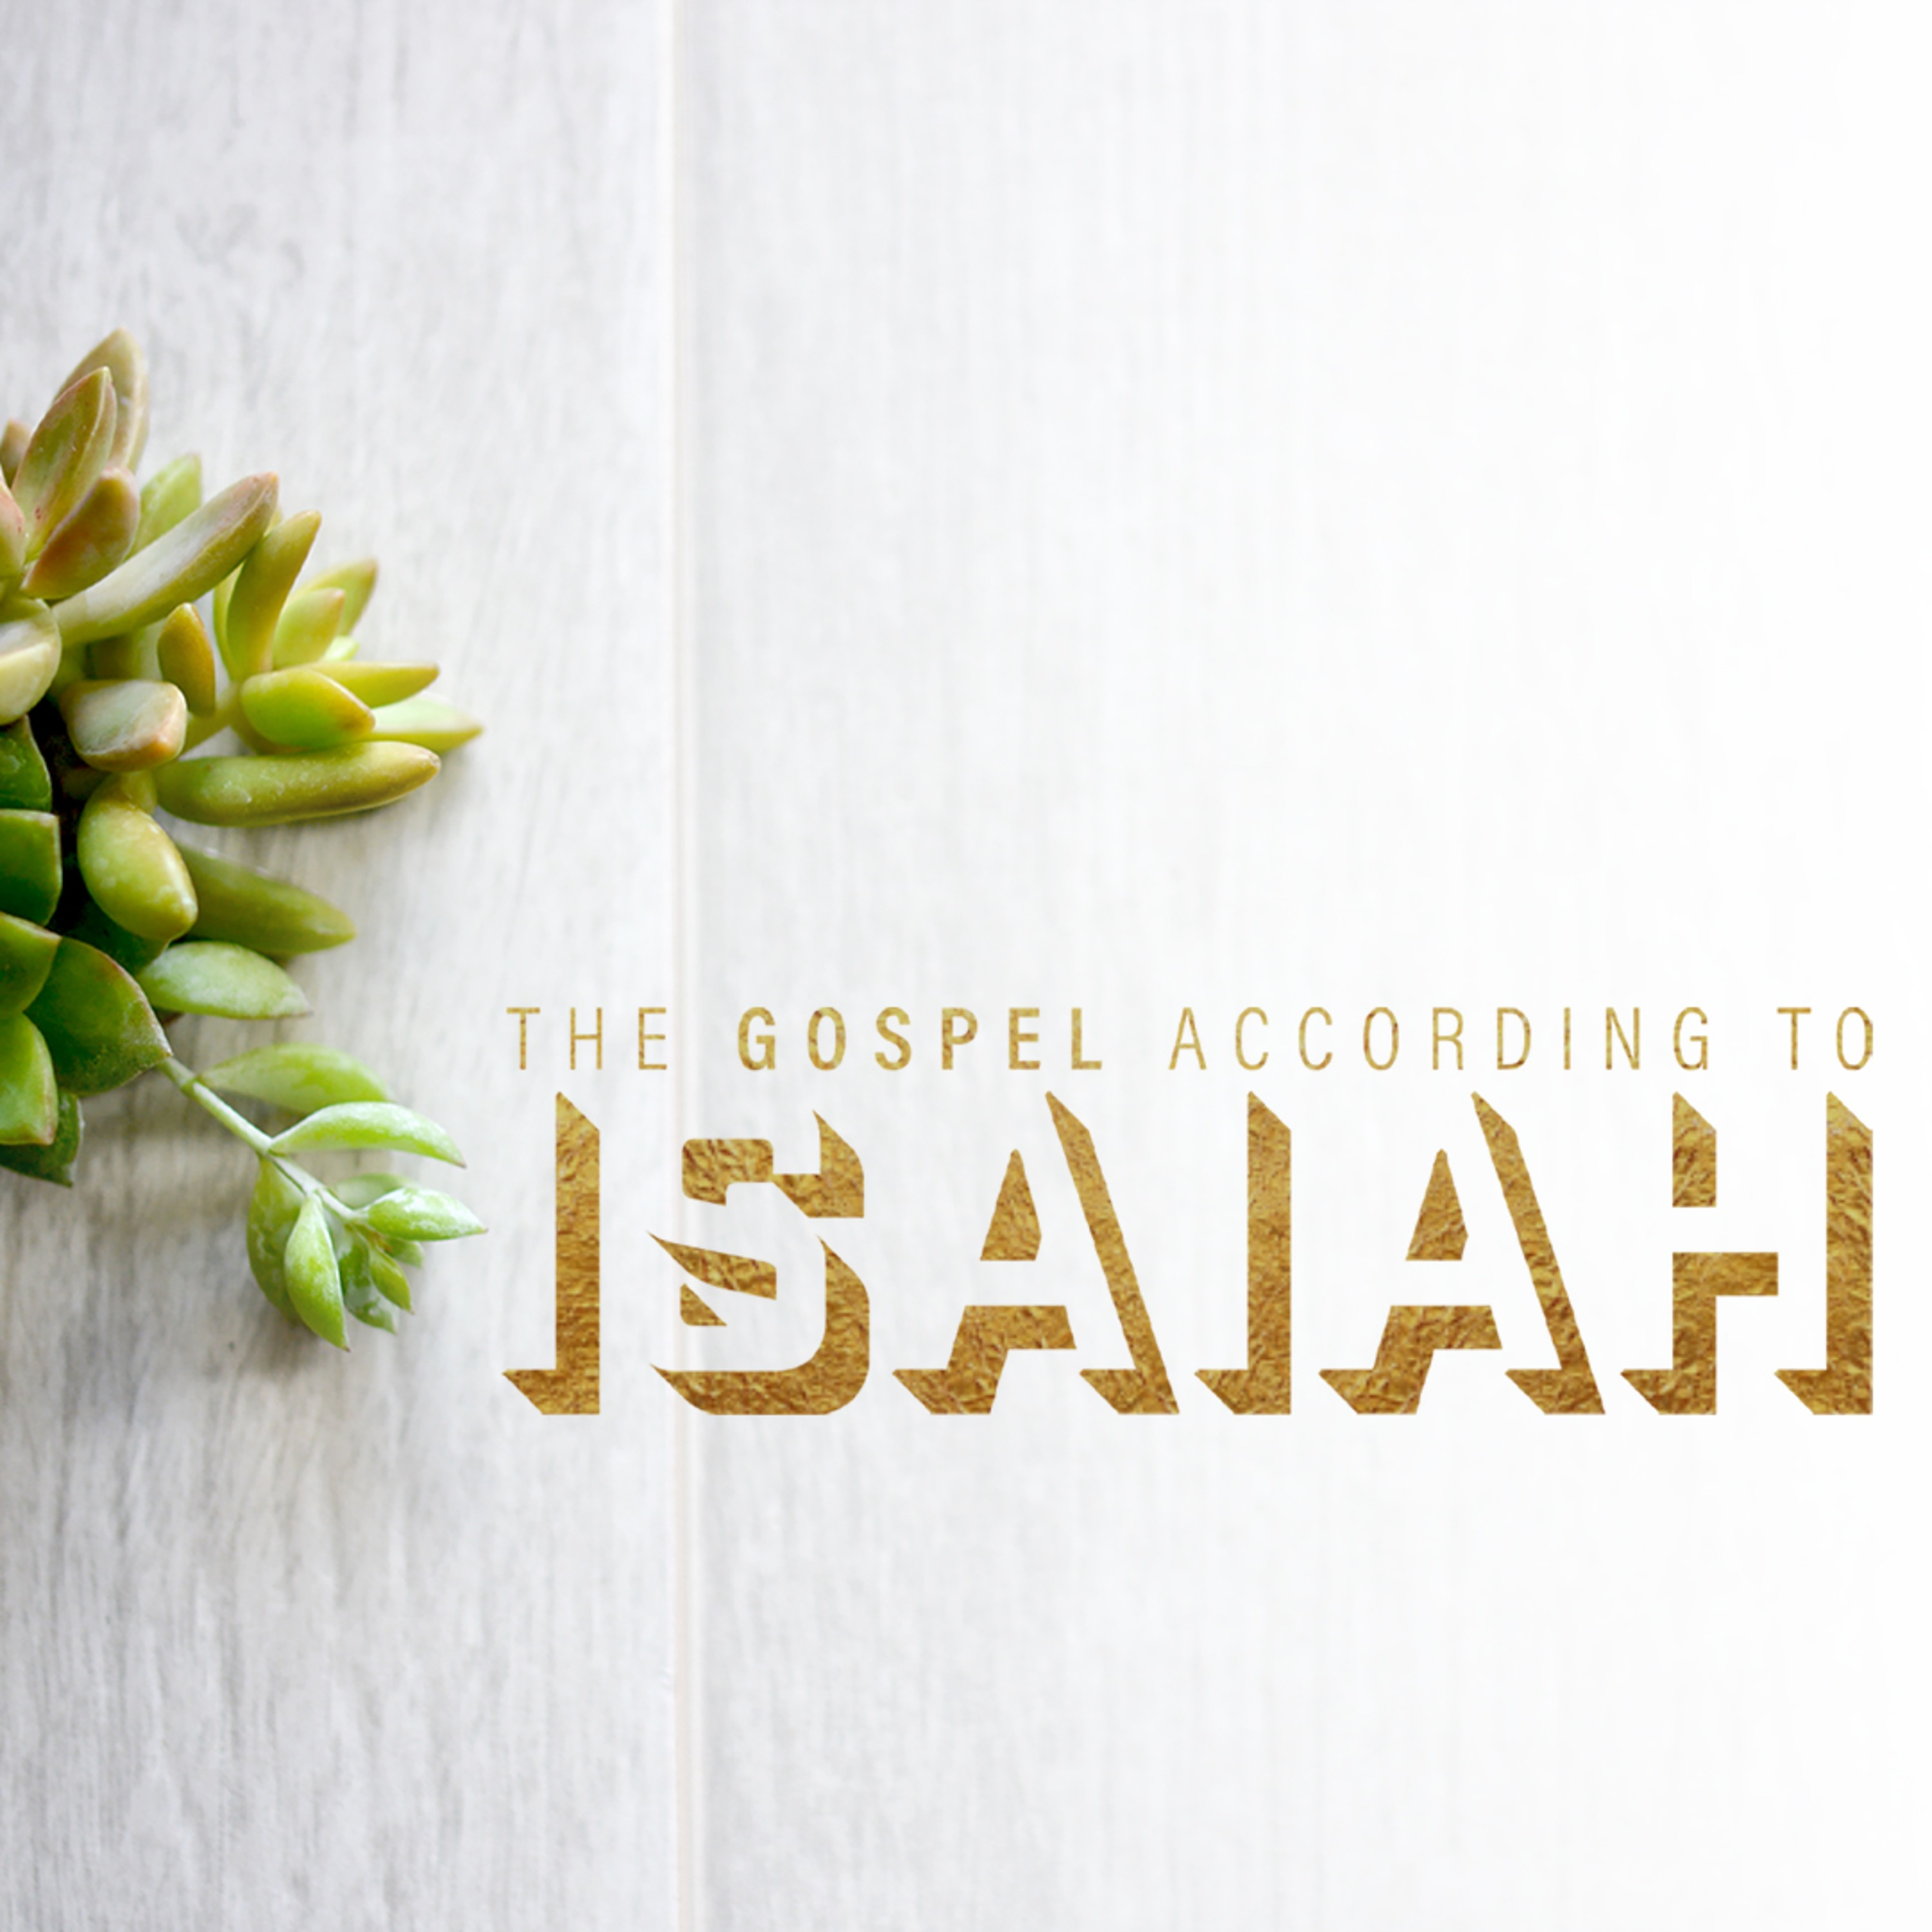 God Pays! ~ The Gospel According to Isaiah